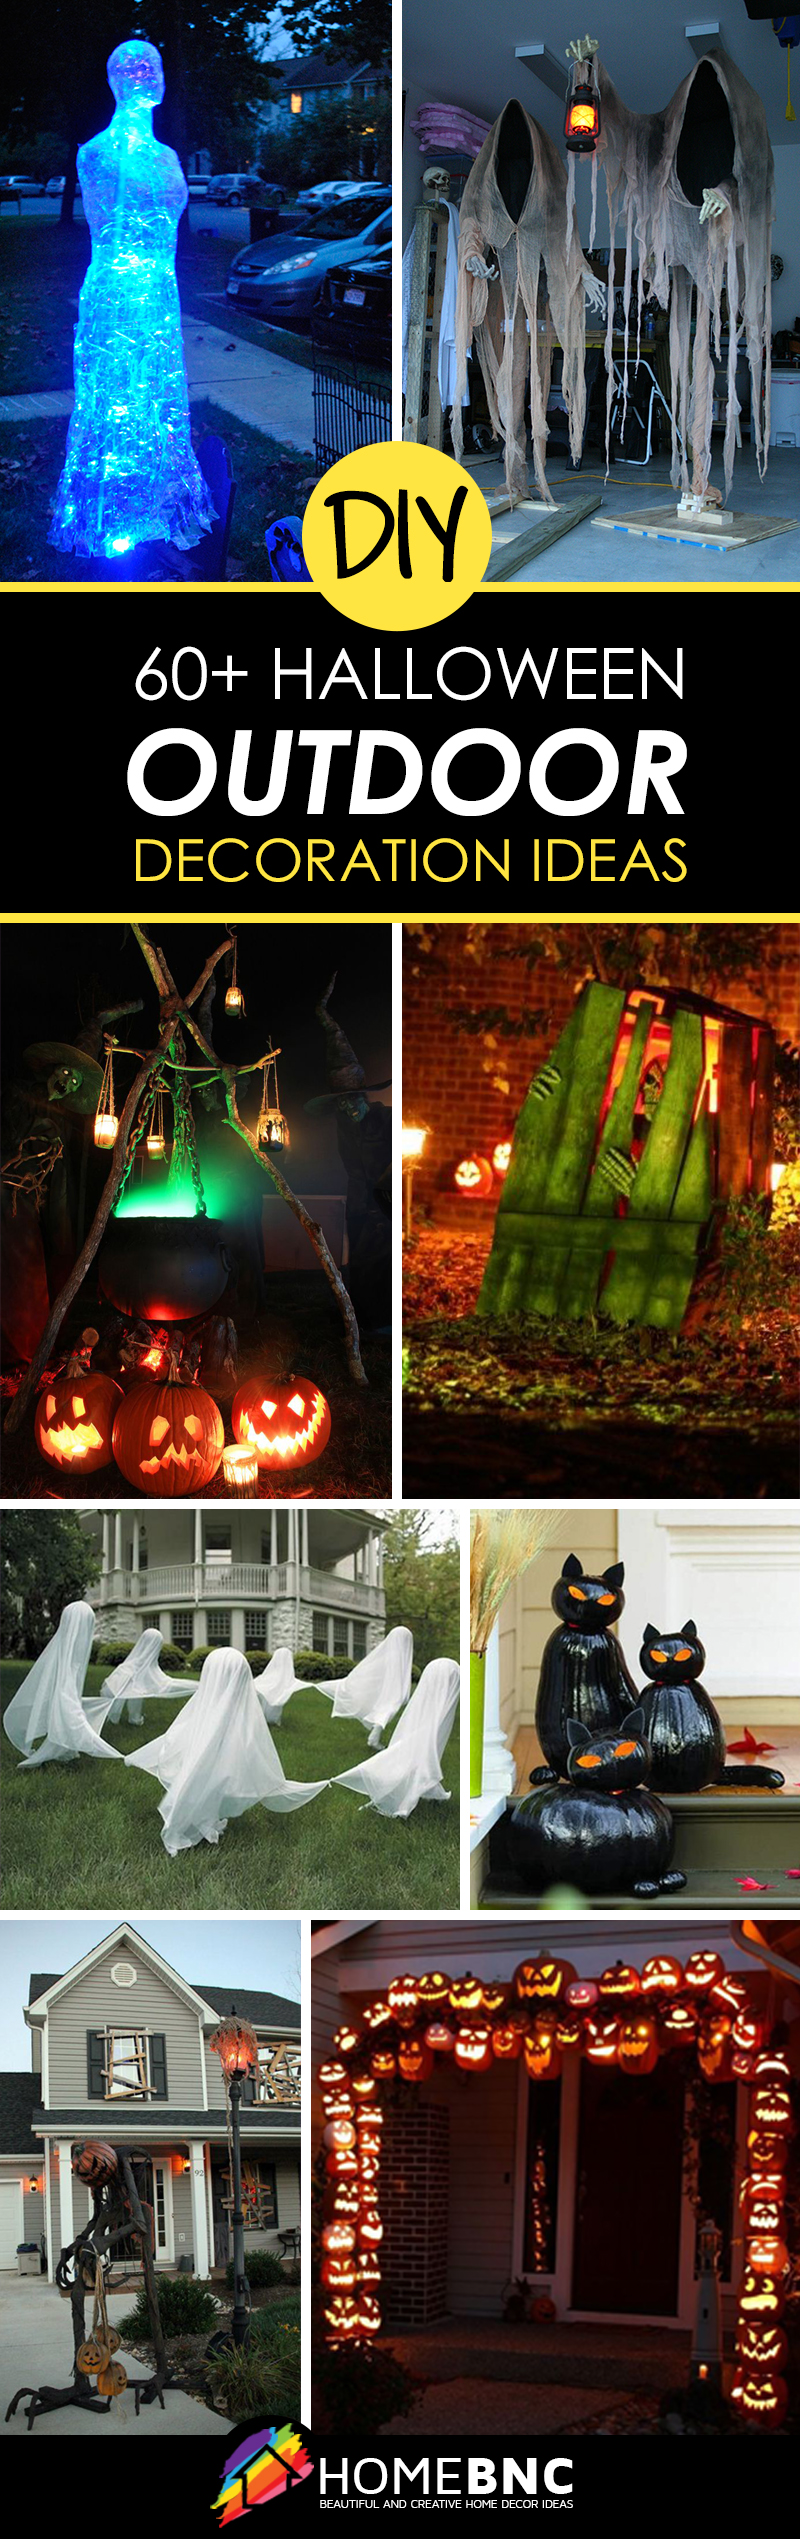 Halloween 2020 Outdoor Decorations 50 Best DIY Halloween Outdoor Decorations for 2020